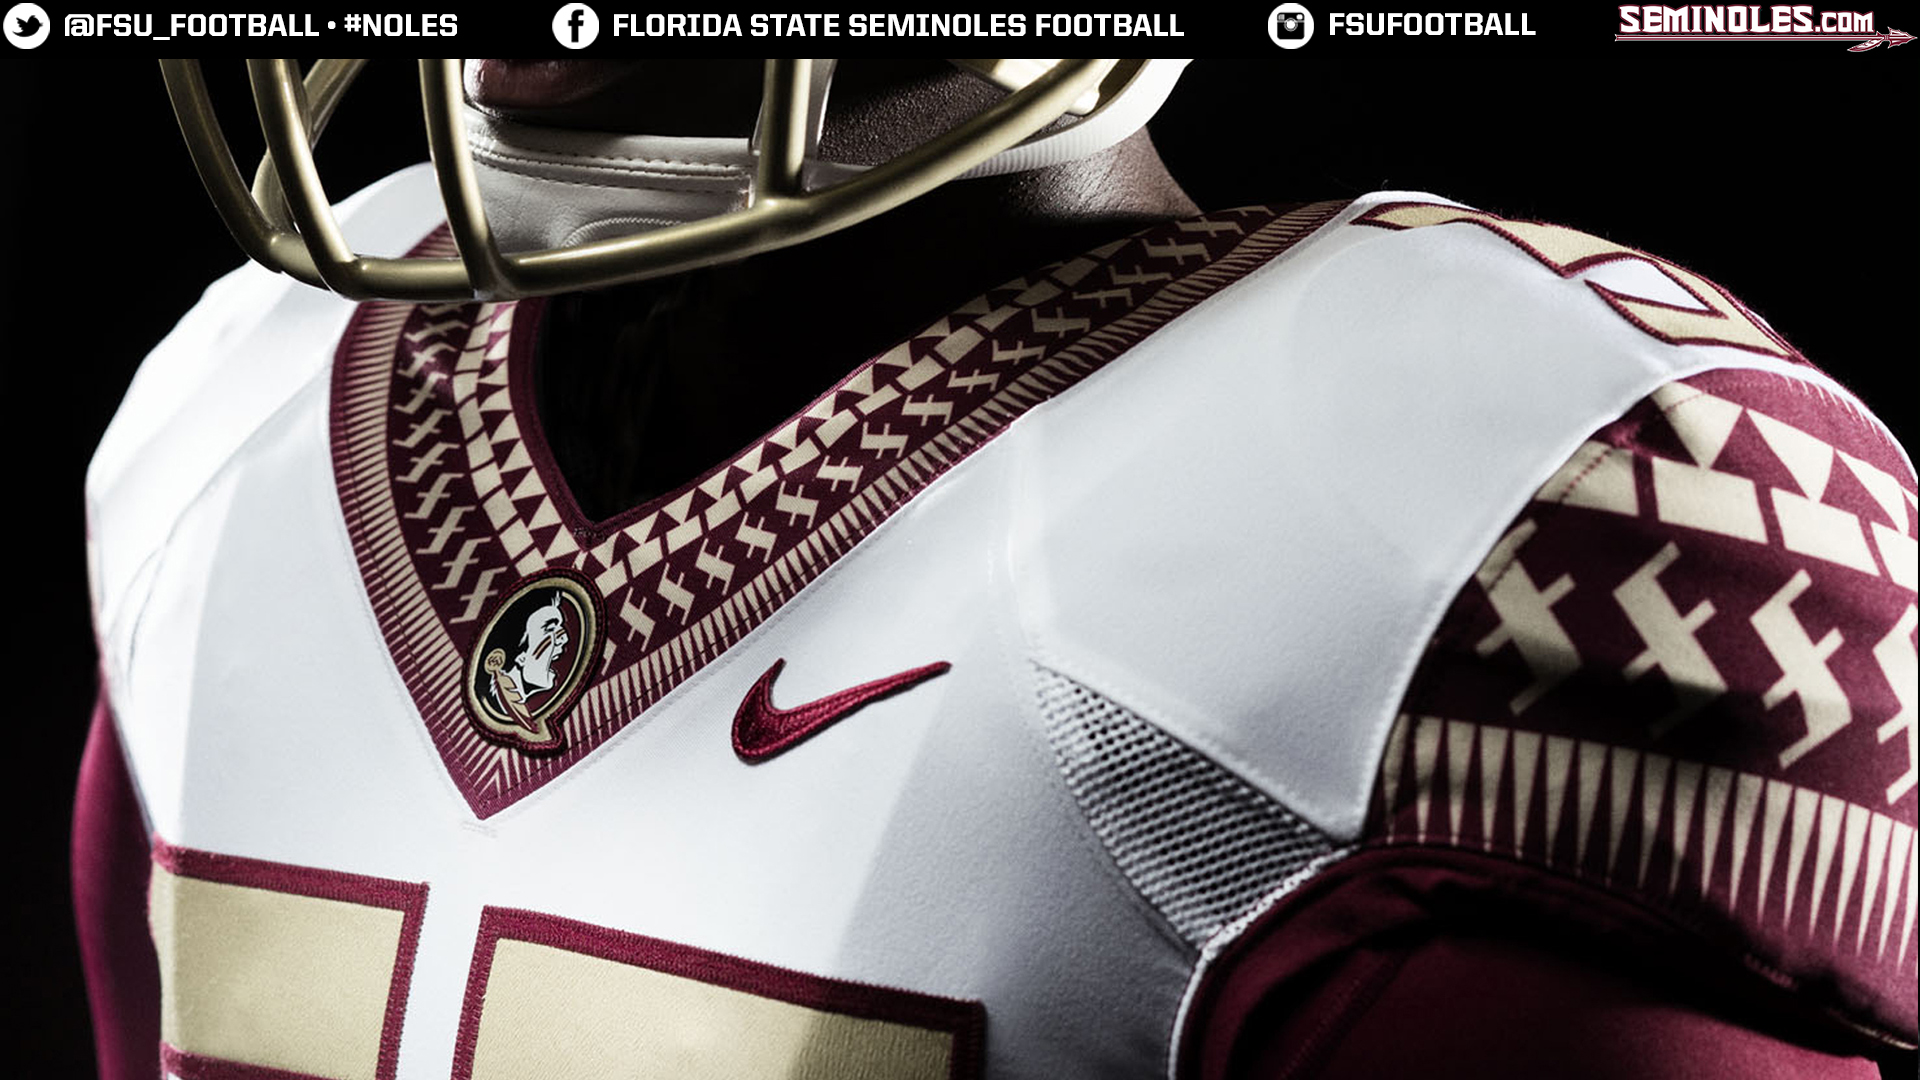 Seminoles desktop wallpapers widescreen football 3 voltagebd Choice Image